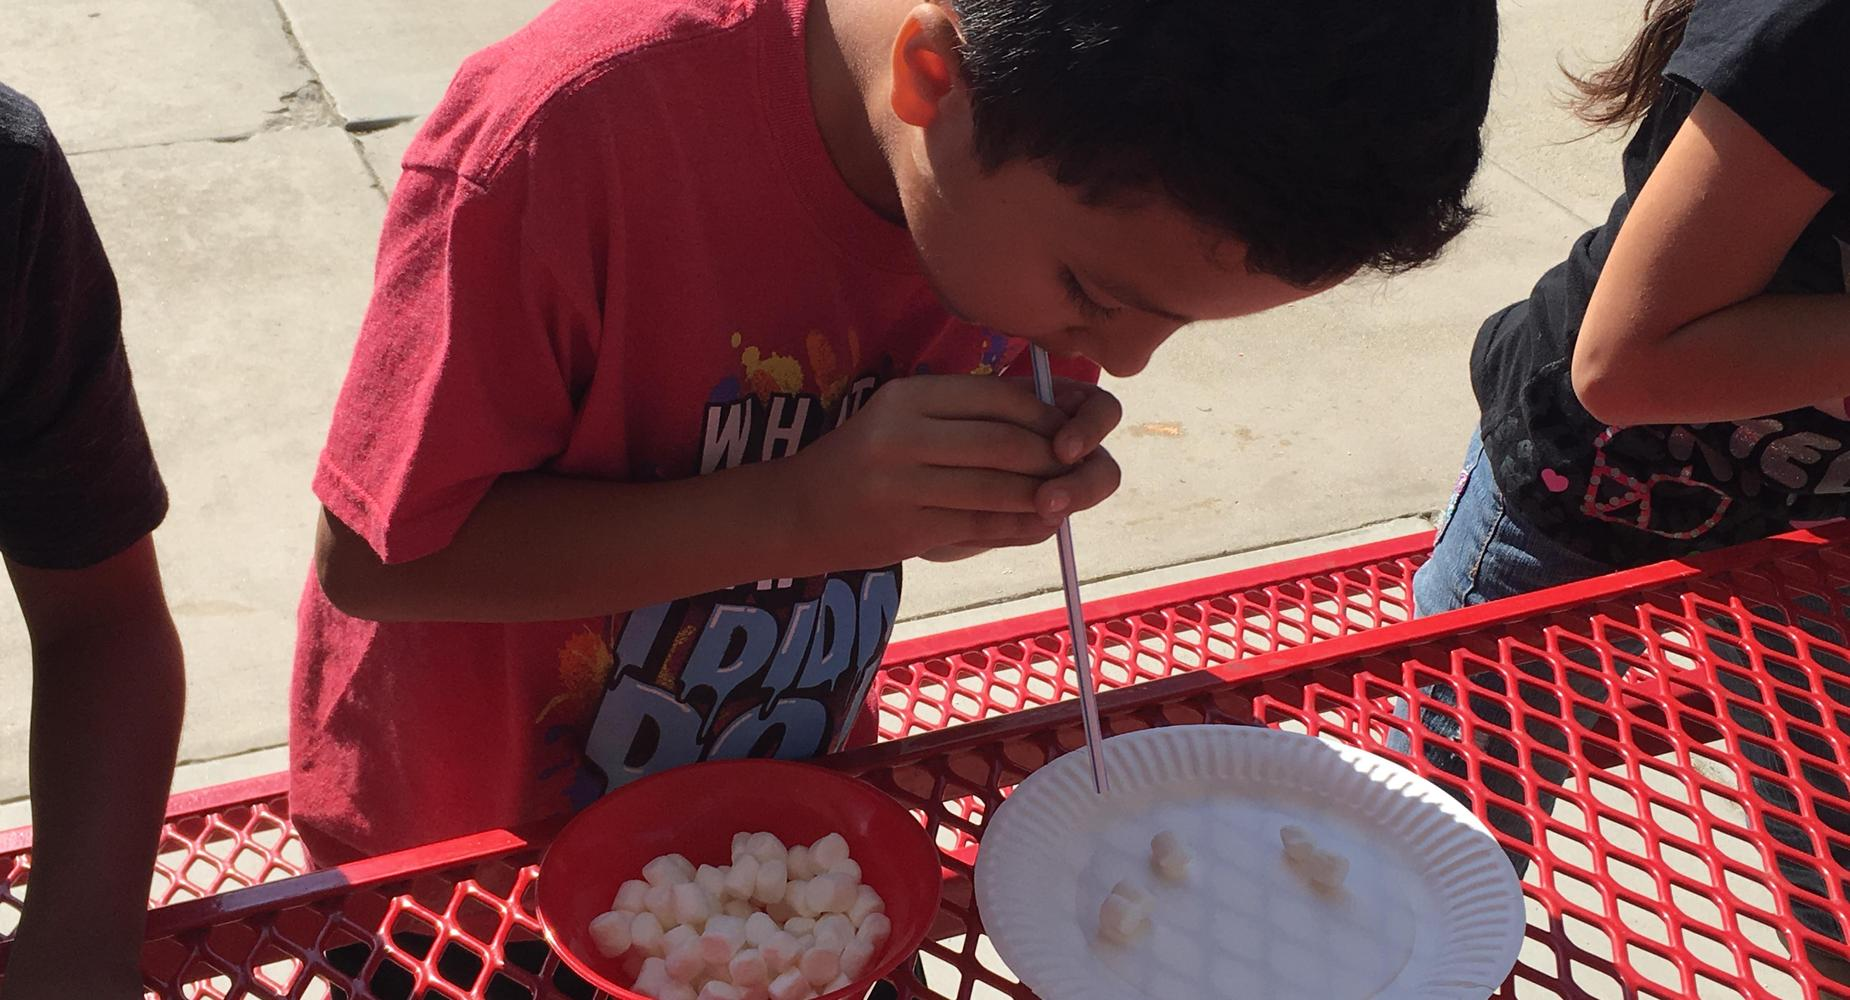 Marshmallow pick-up contest.